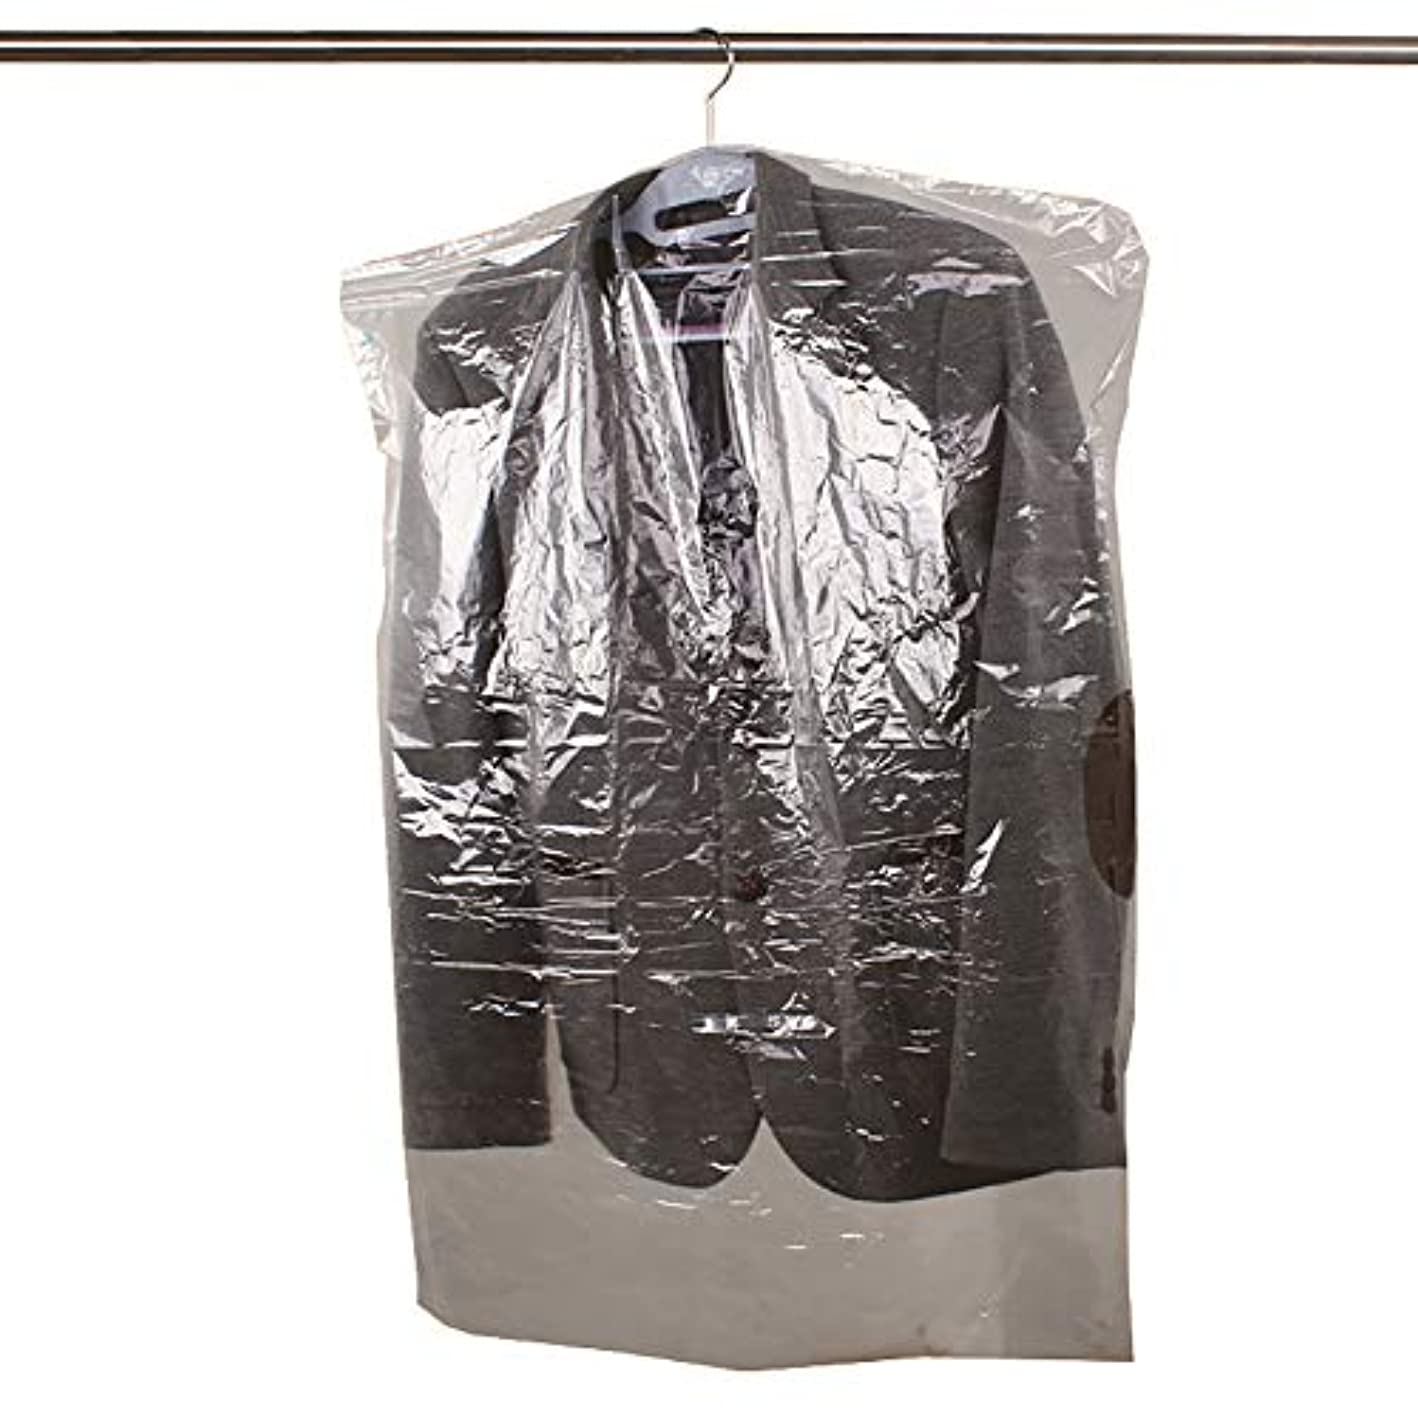 50 Packs Disposable Clear Garment Bags Dry Cleaning Laundrette Polythylene Garment Clothes Cover Protector Bags CYFC322 S: 23.6